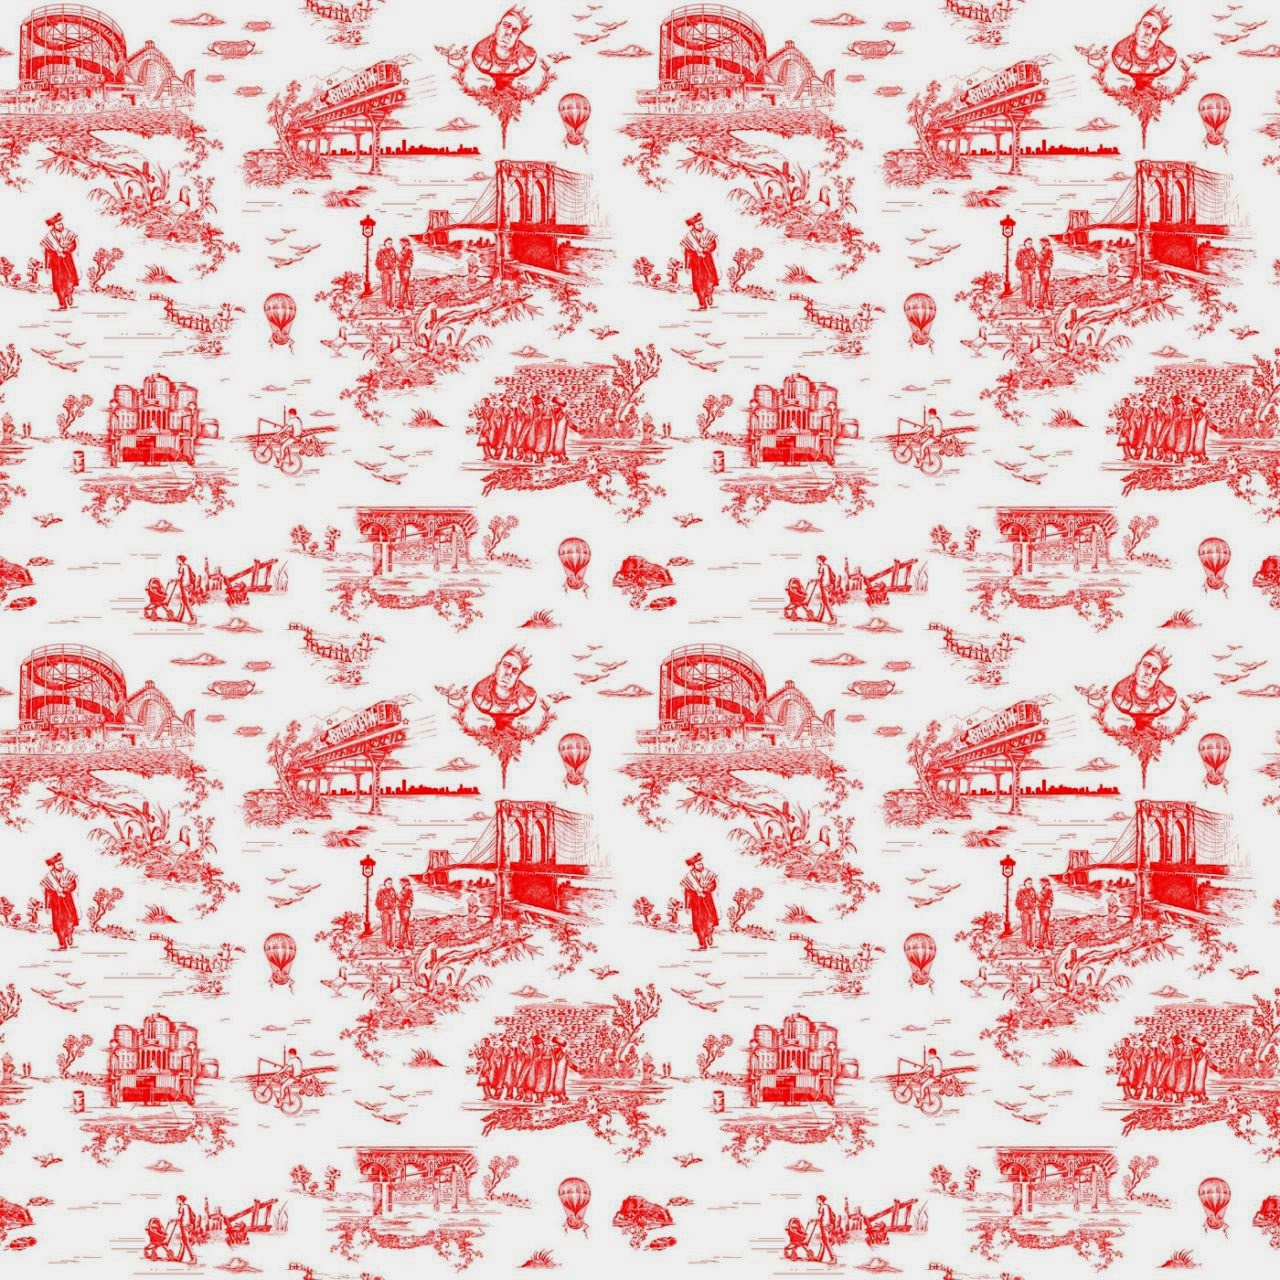 http://www.flavorpaper.com/wallpaper/brooklyn-toile